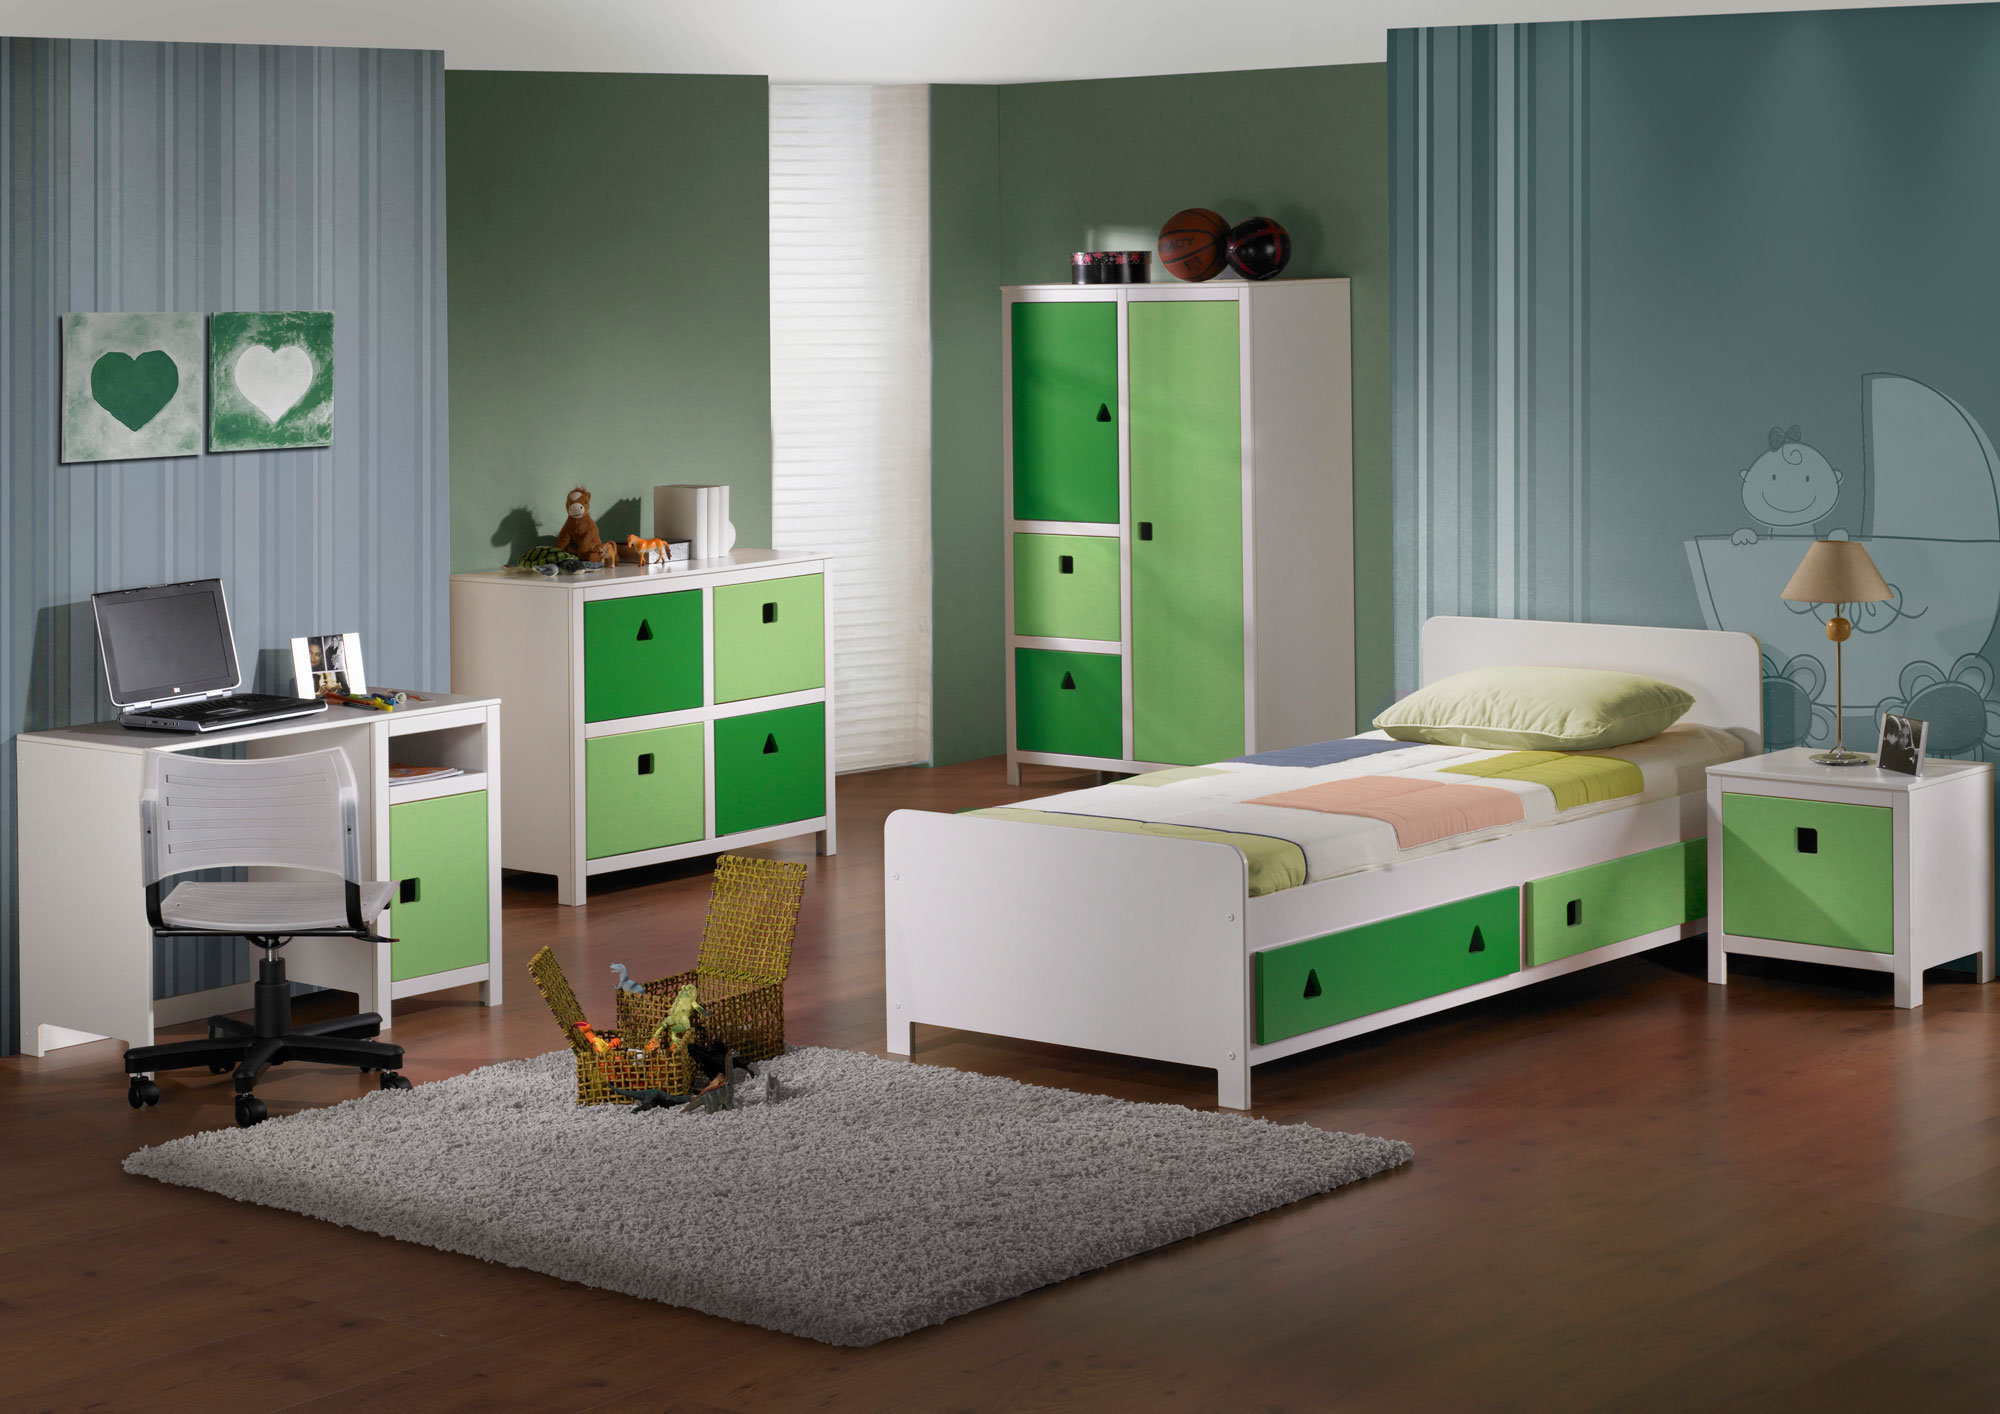 Combine Green and White Details in Boys Room Decor with White Computer Desk and Single Storage Bed